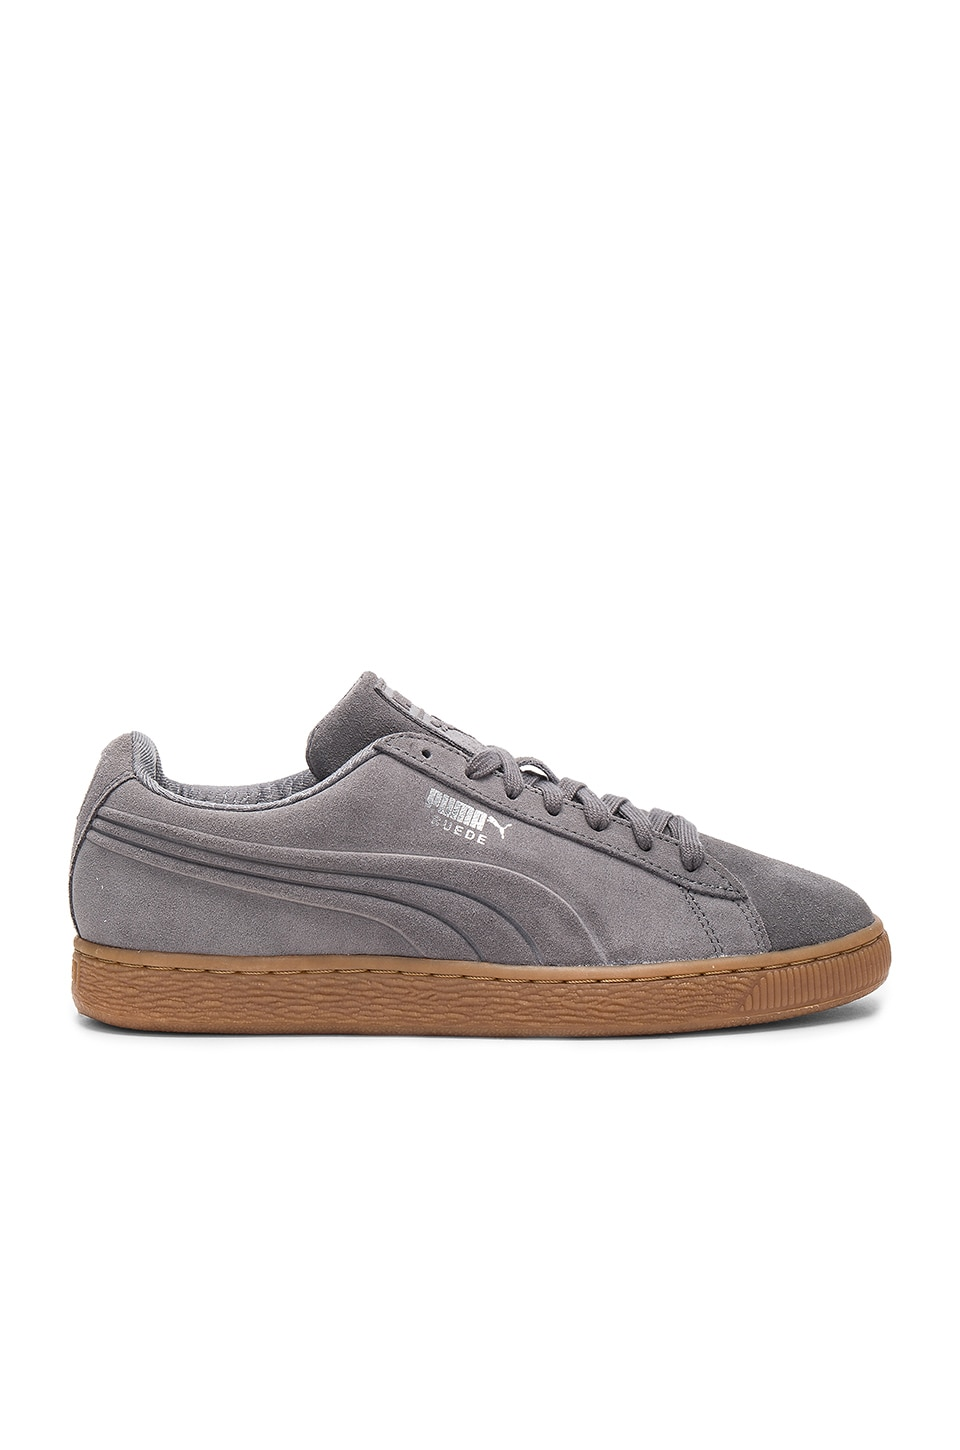 Puma Select Suede Debossed in Steel Gray & Peacoat